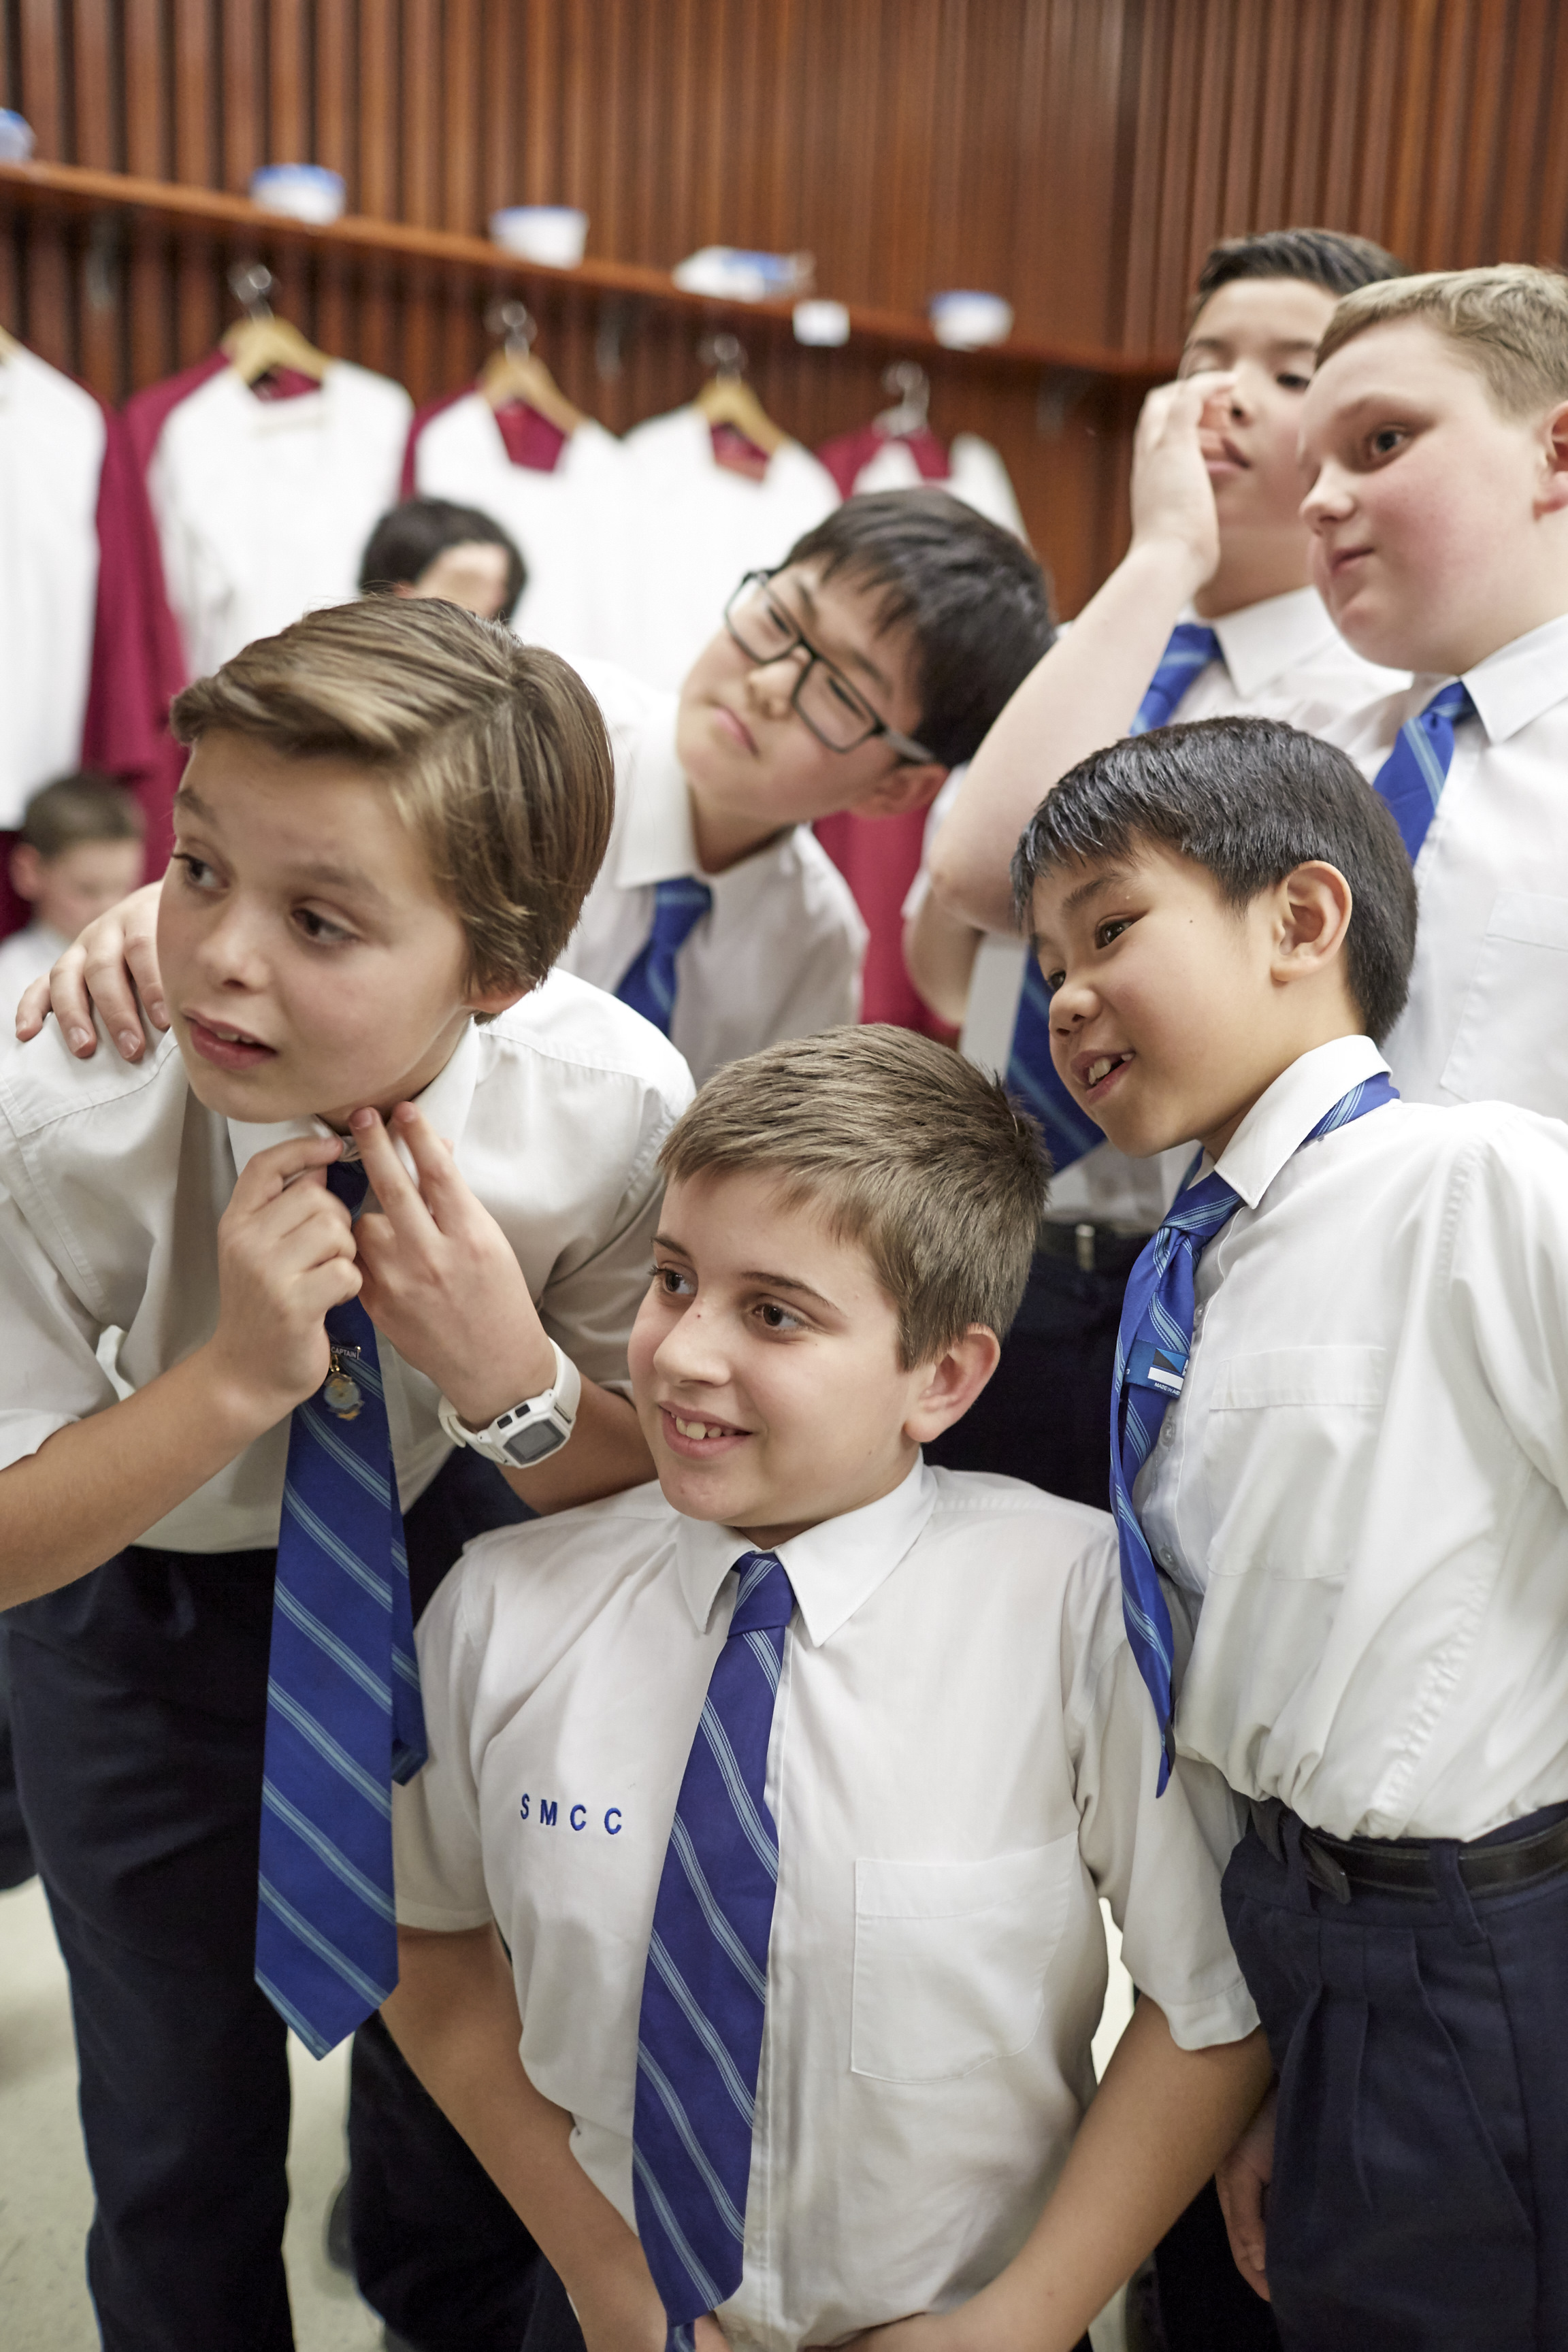 Choristers of Saint Mary's Cathedral Choir prepare to put on their robes